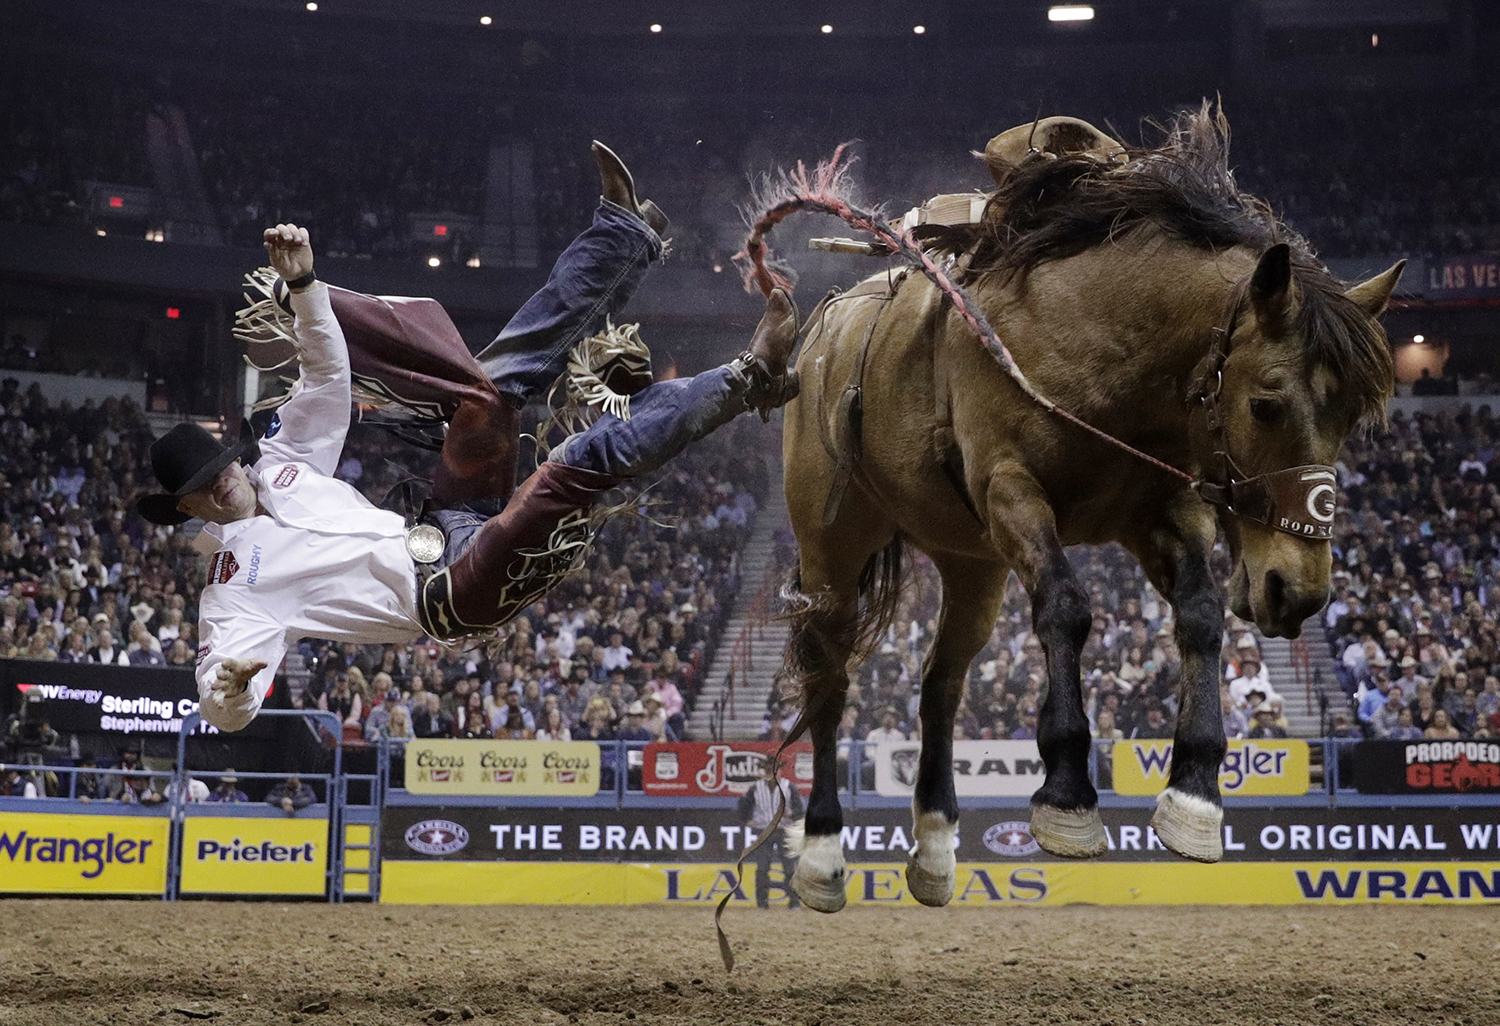 Sterling Crawley gets tossed of his horse while competing in the saddle bronc riding event during the final night of the National Finals Rodeo, Saturday, Dec. 10, 2016, in Las Vegas. (AP Photo/John Locher)